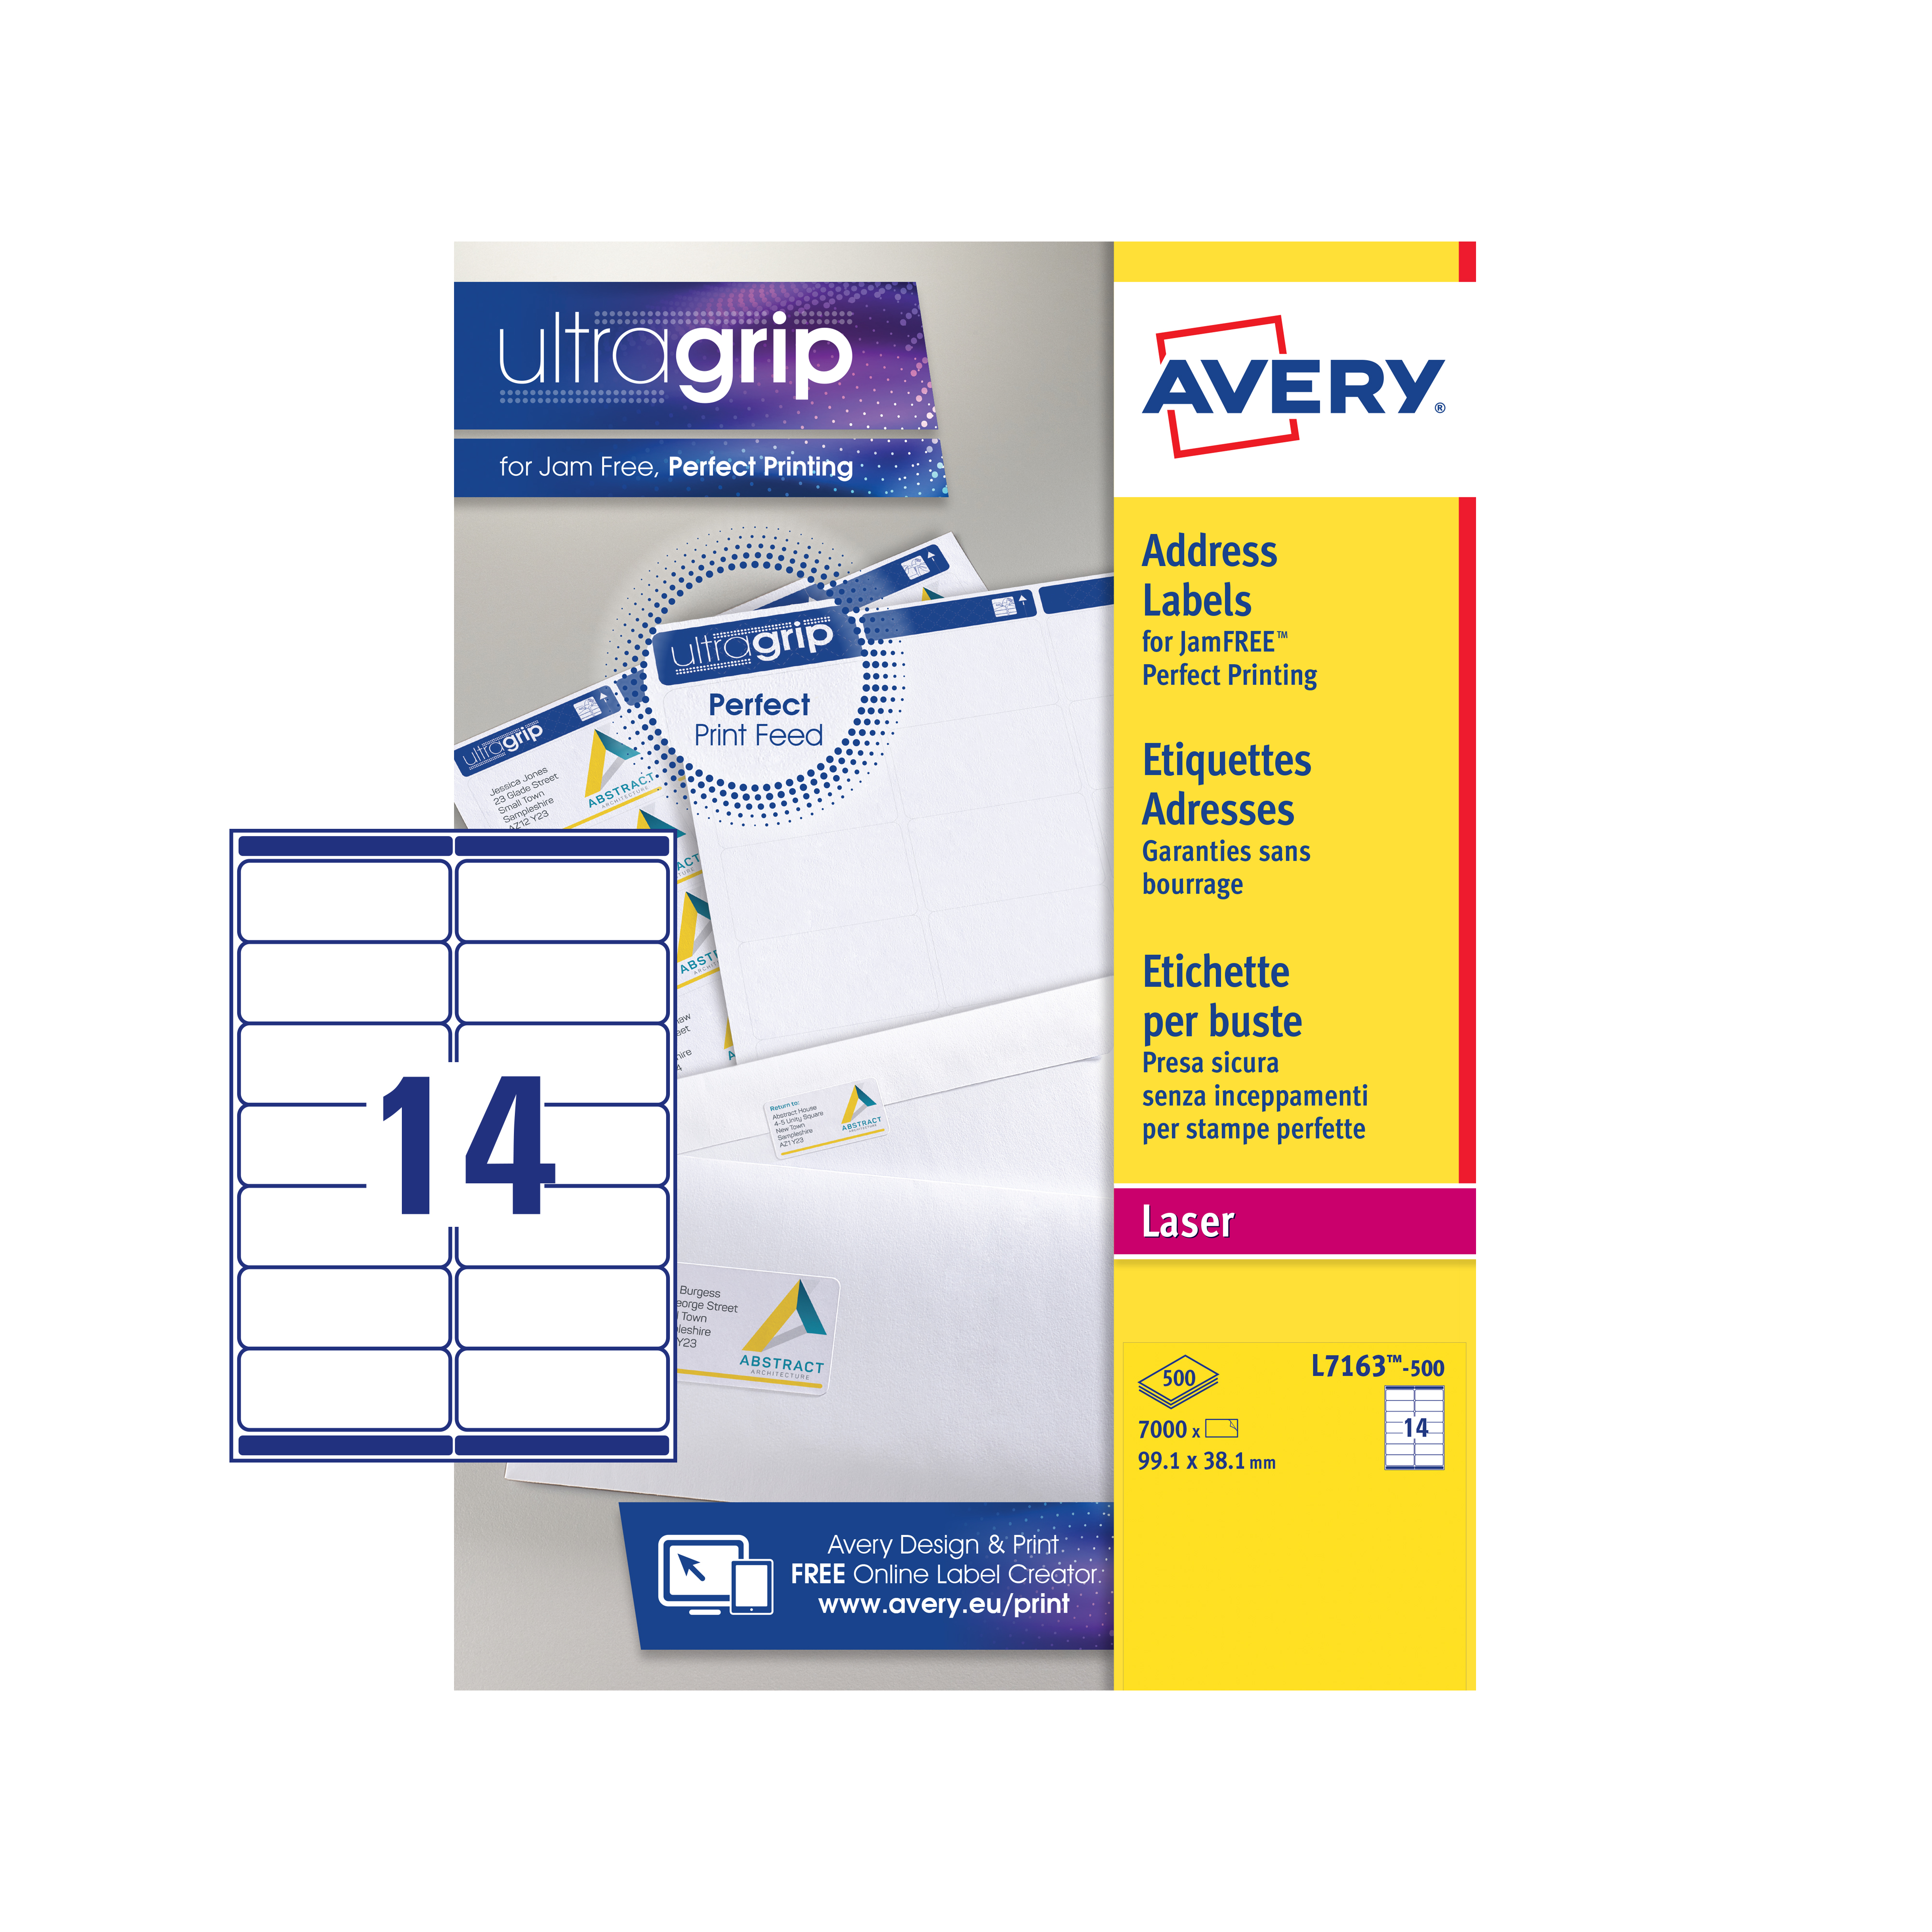 Avery Addressing Labels Laser Jam-free 14 per Sheet 99.1x38.1mm White Ref L7163-500 7000 Labels